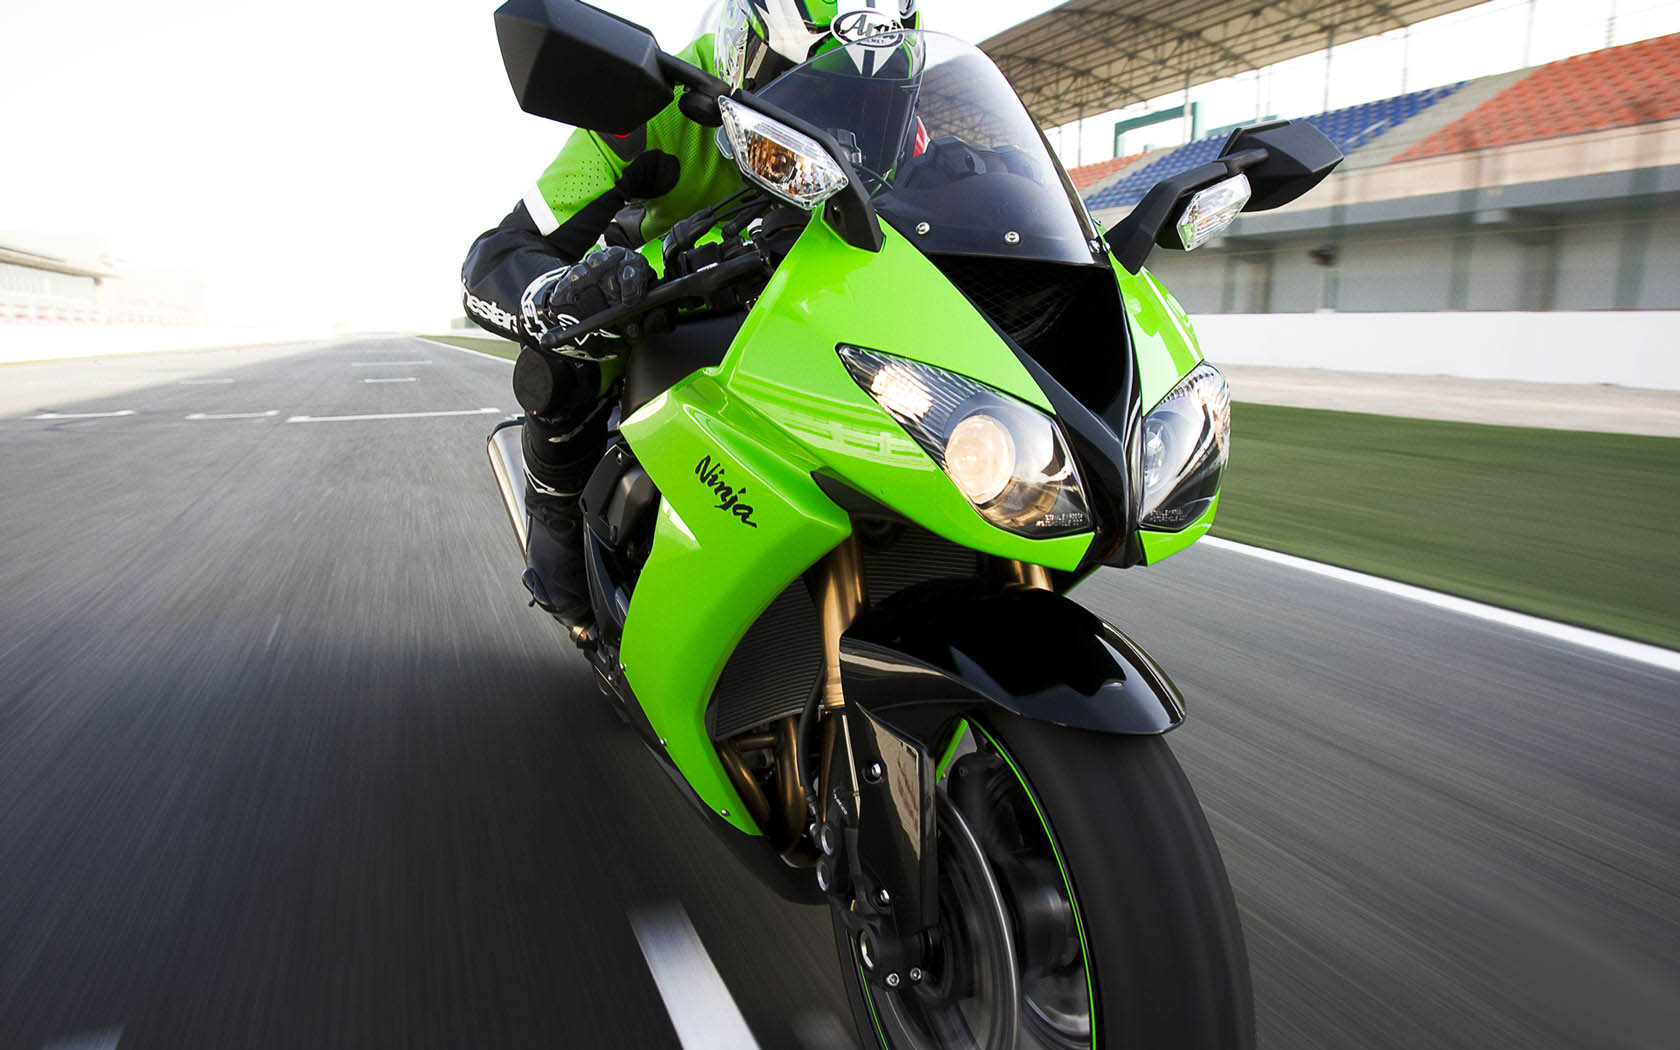 Rider Tucked Behind The Speed Bubble Of A Kawasaki Ninja